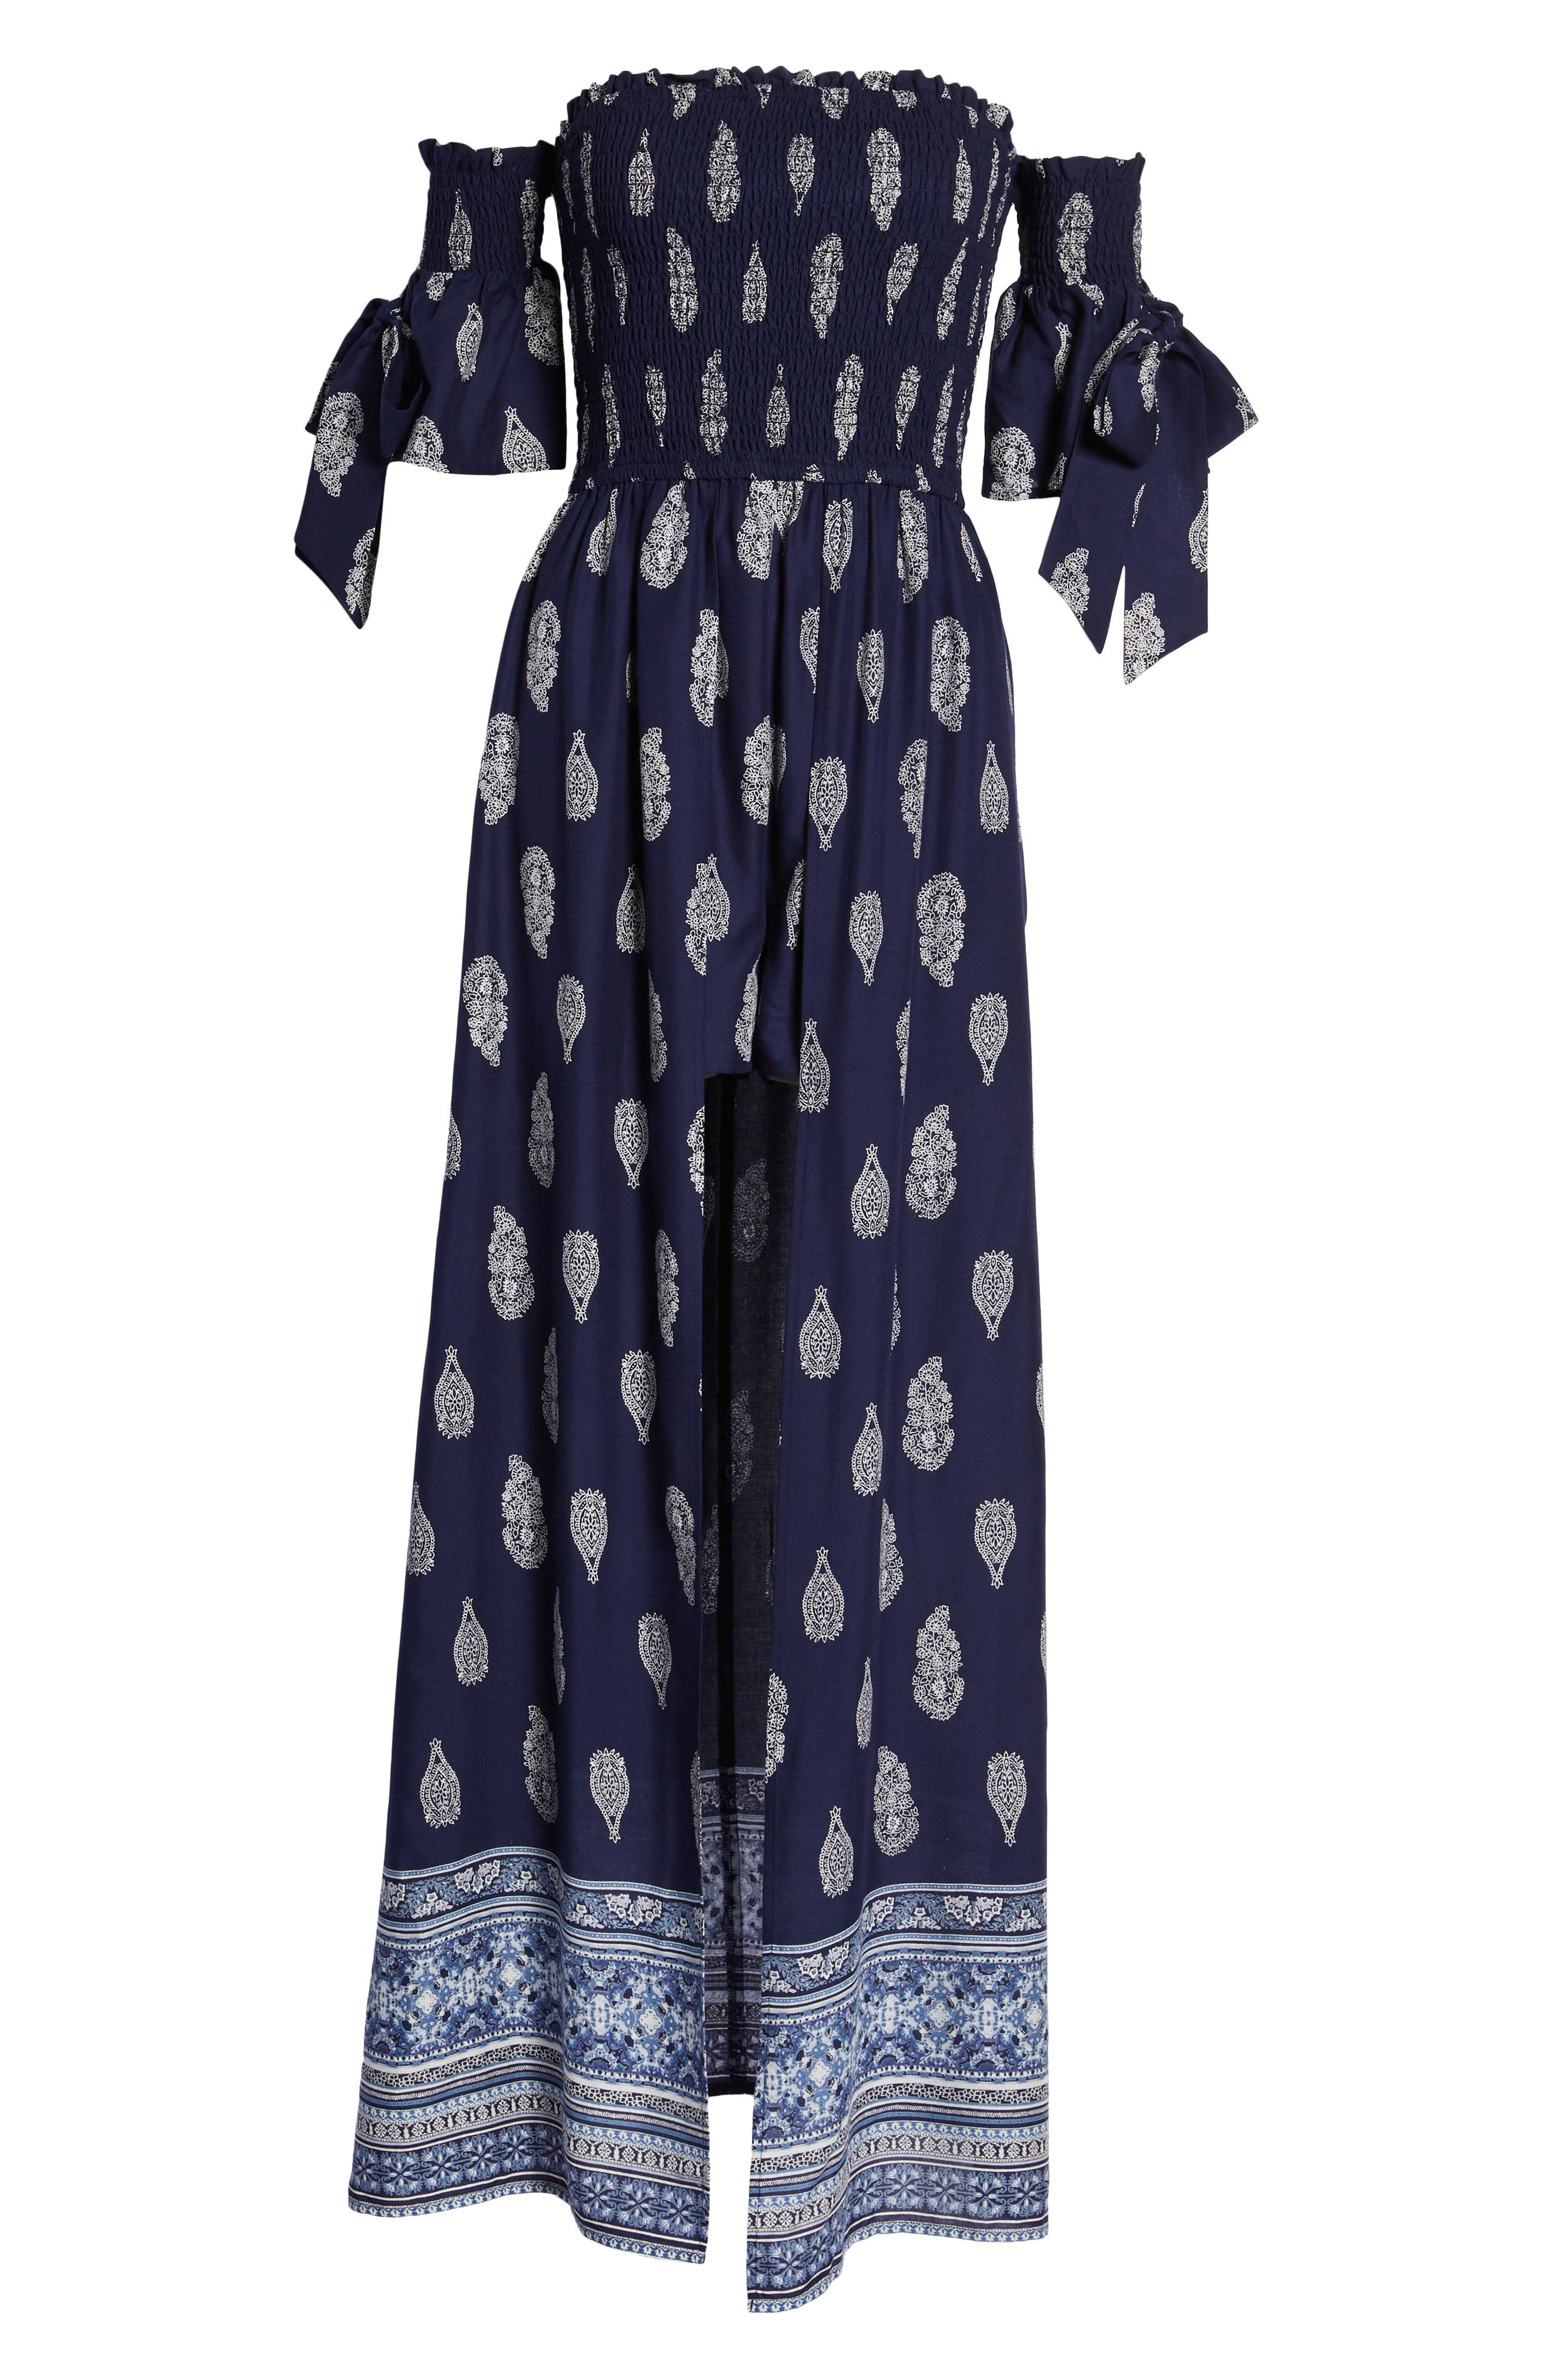 BAND OF GYPSIES,                             Summer Bloom Smocked Maxi Romper,                             Alternate thumbnail 7, color,                             400